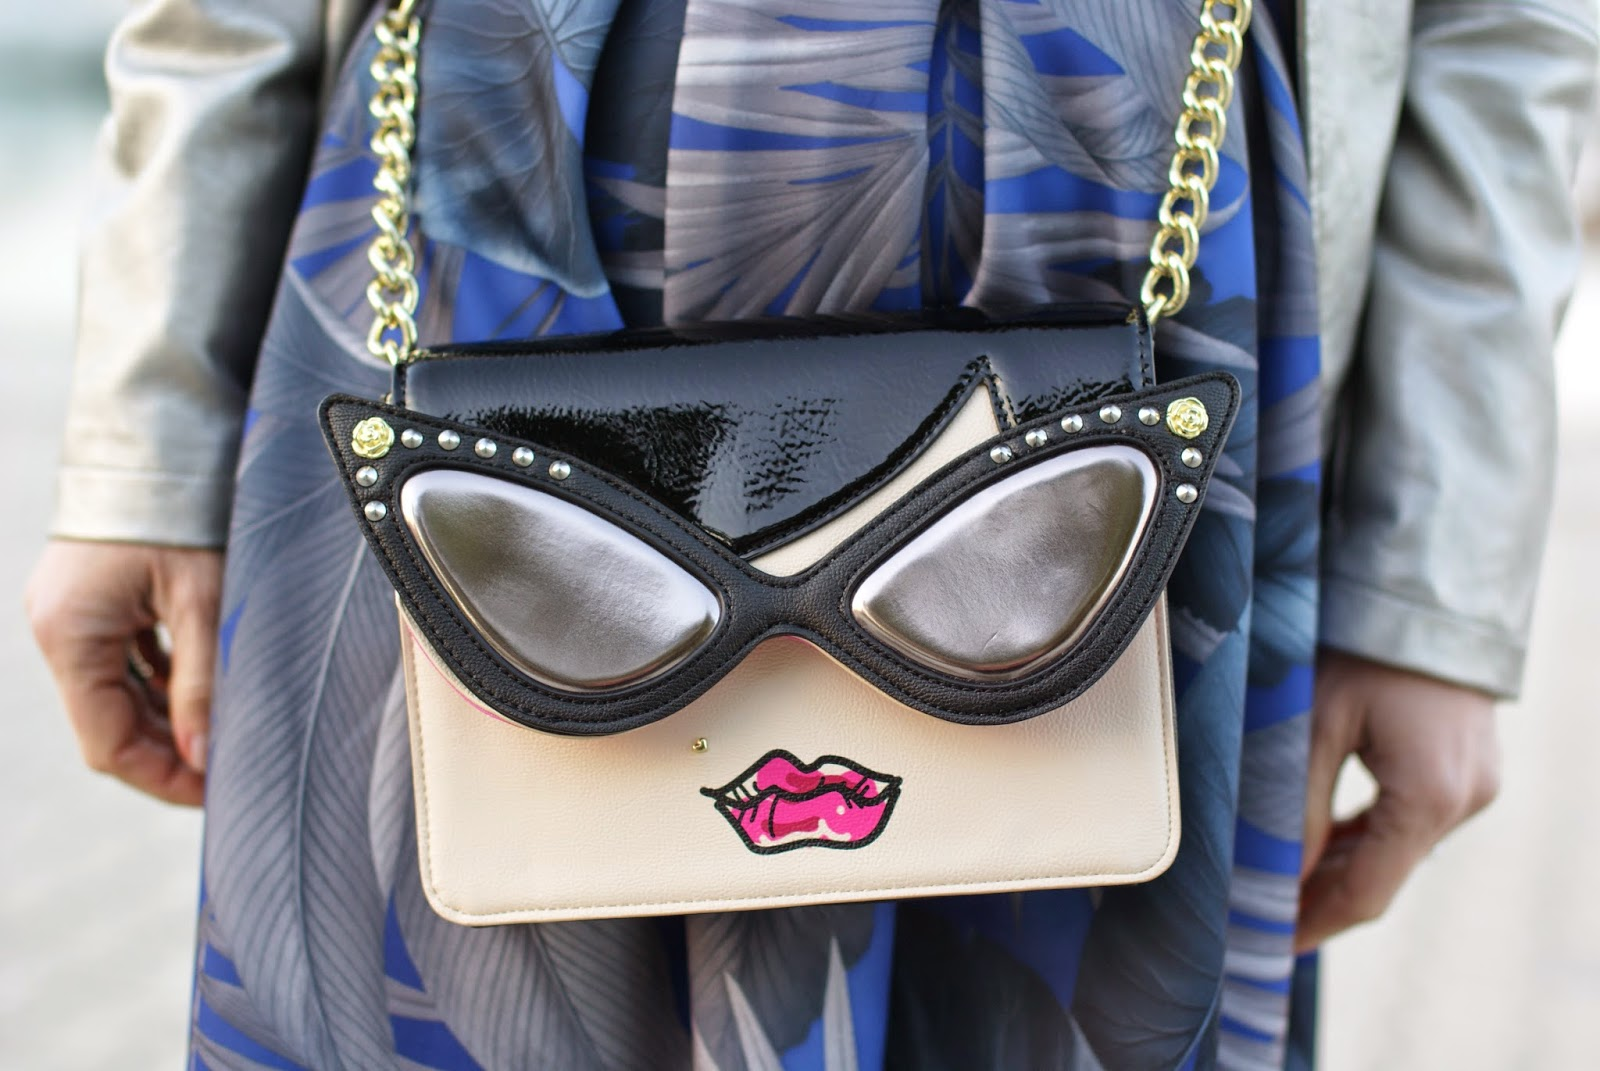 Betsey Johnson face bag, Betsey Johnson sunglasses bag, Fashion and Cookies fashion blog, fashion blogger